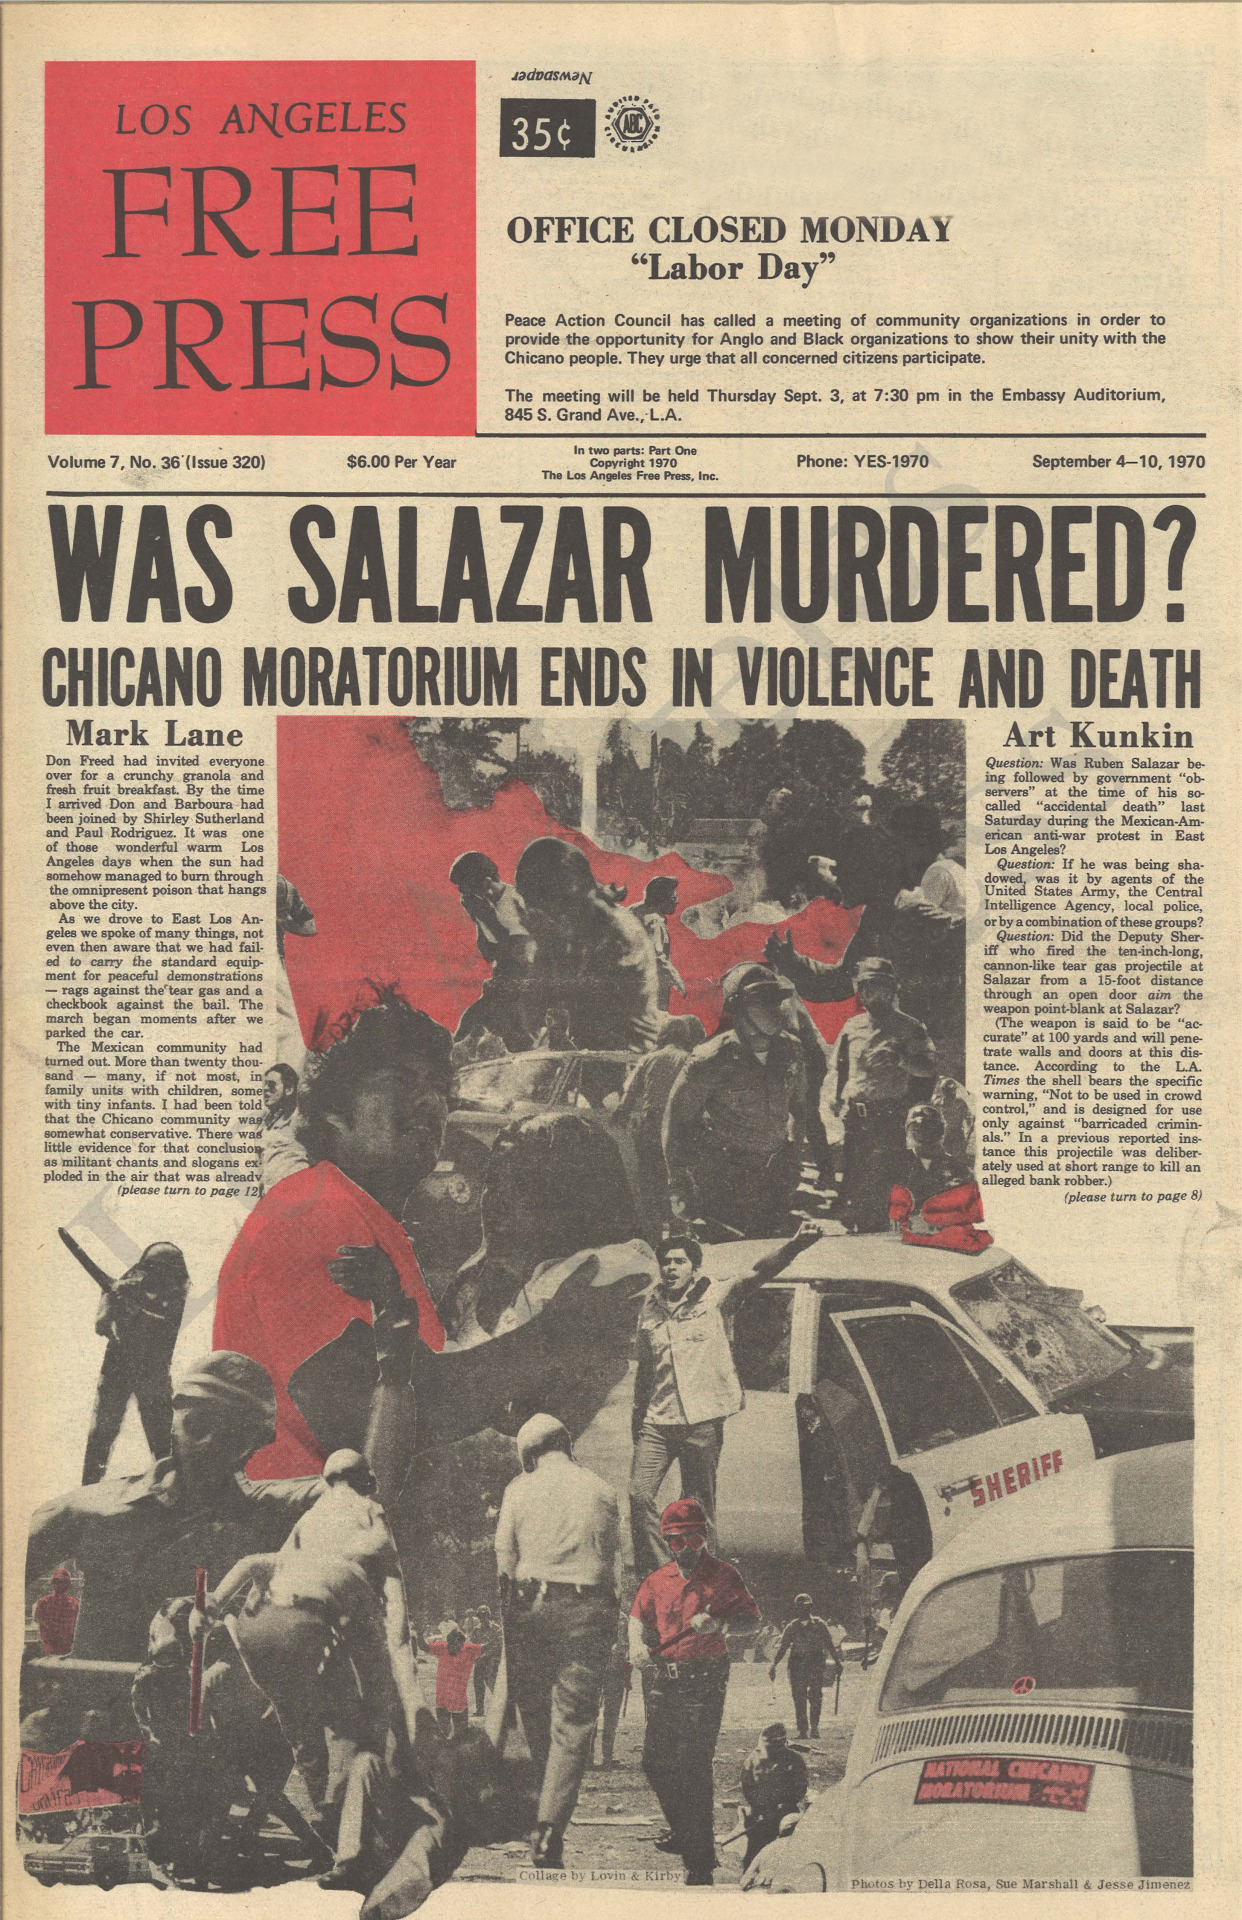 Chicano Moratorium ends with the death of reporter Ruben Salazar by the hands of the LAPD